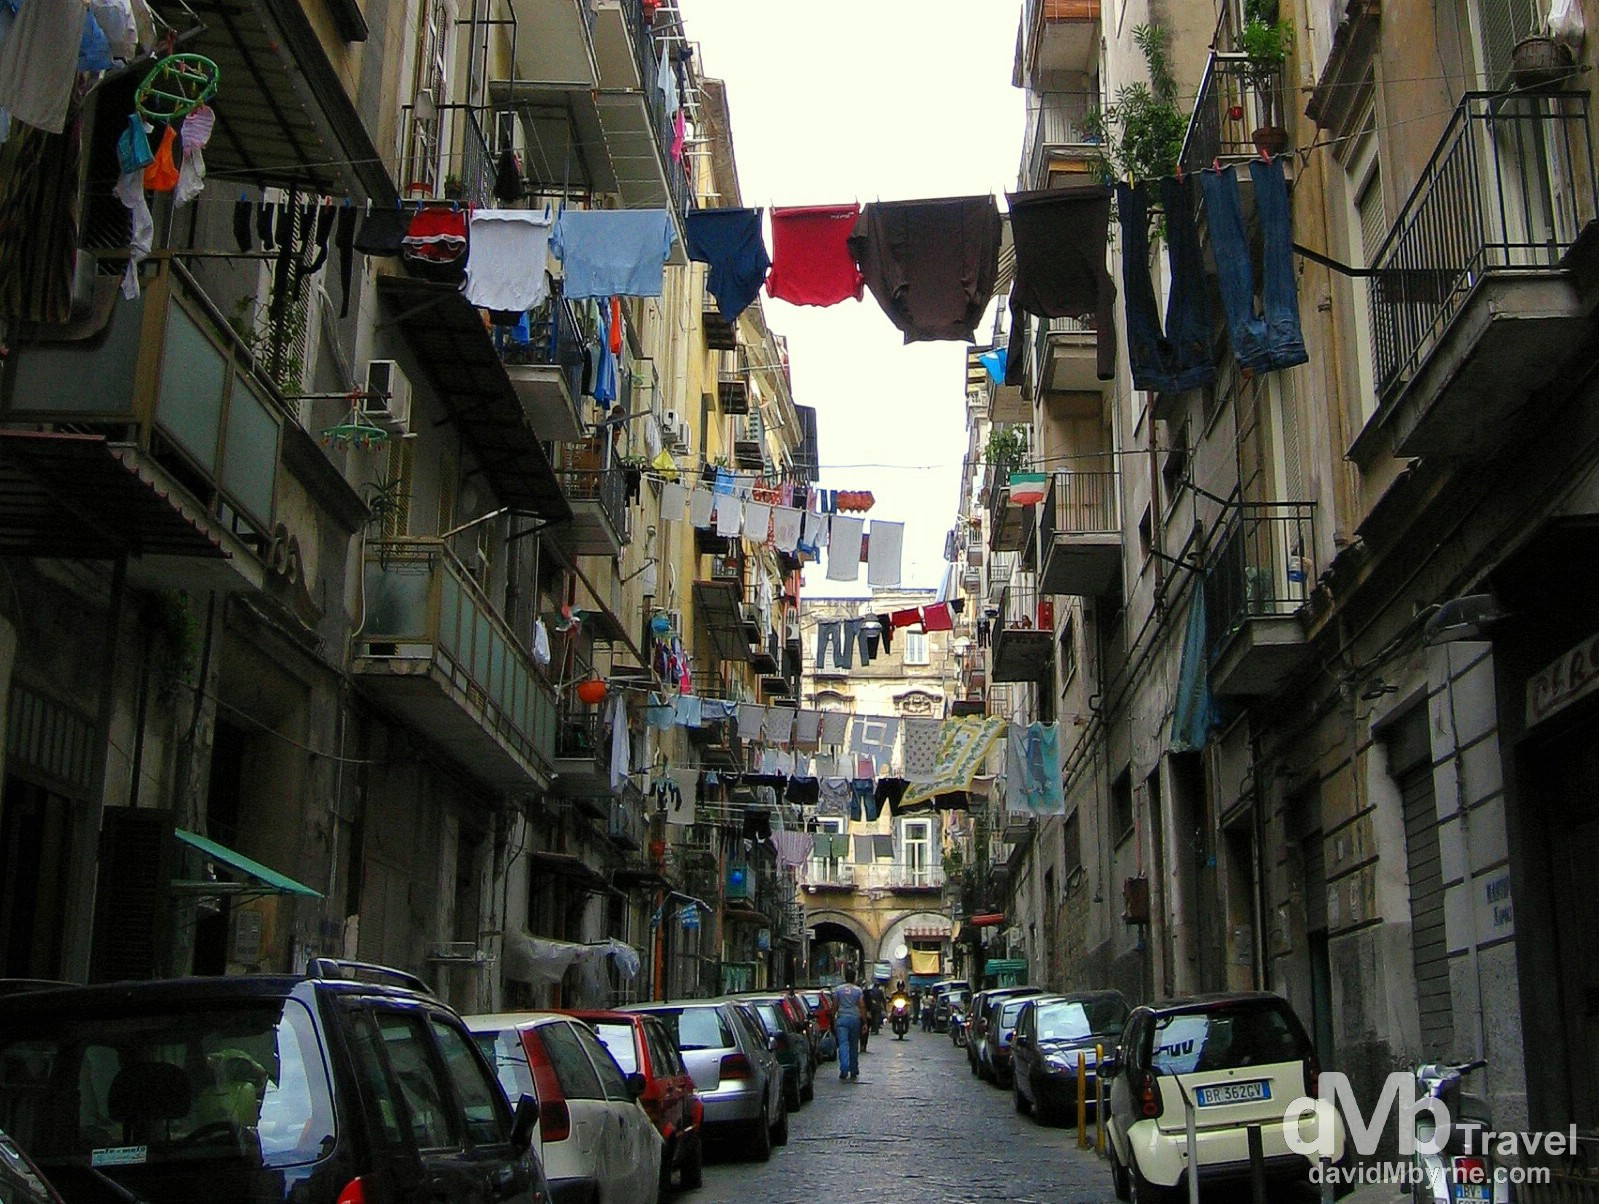 Laundry out to dry in residential lanes in Naples, Italy. September 6th 2007